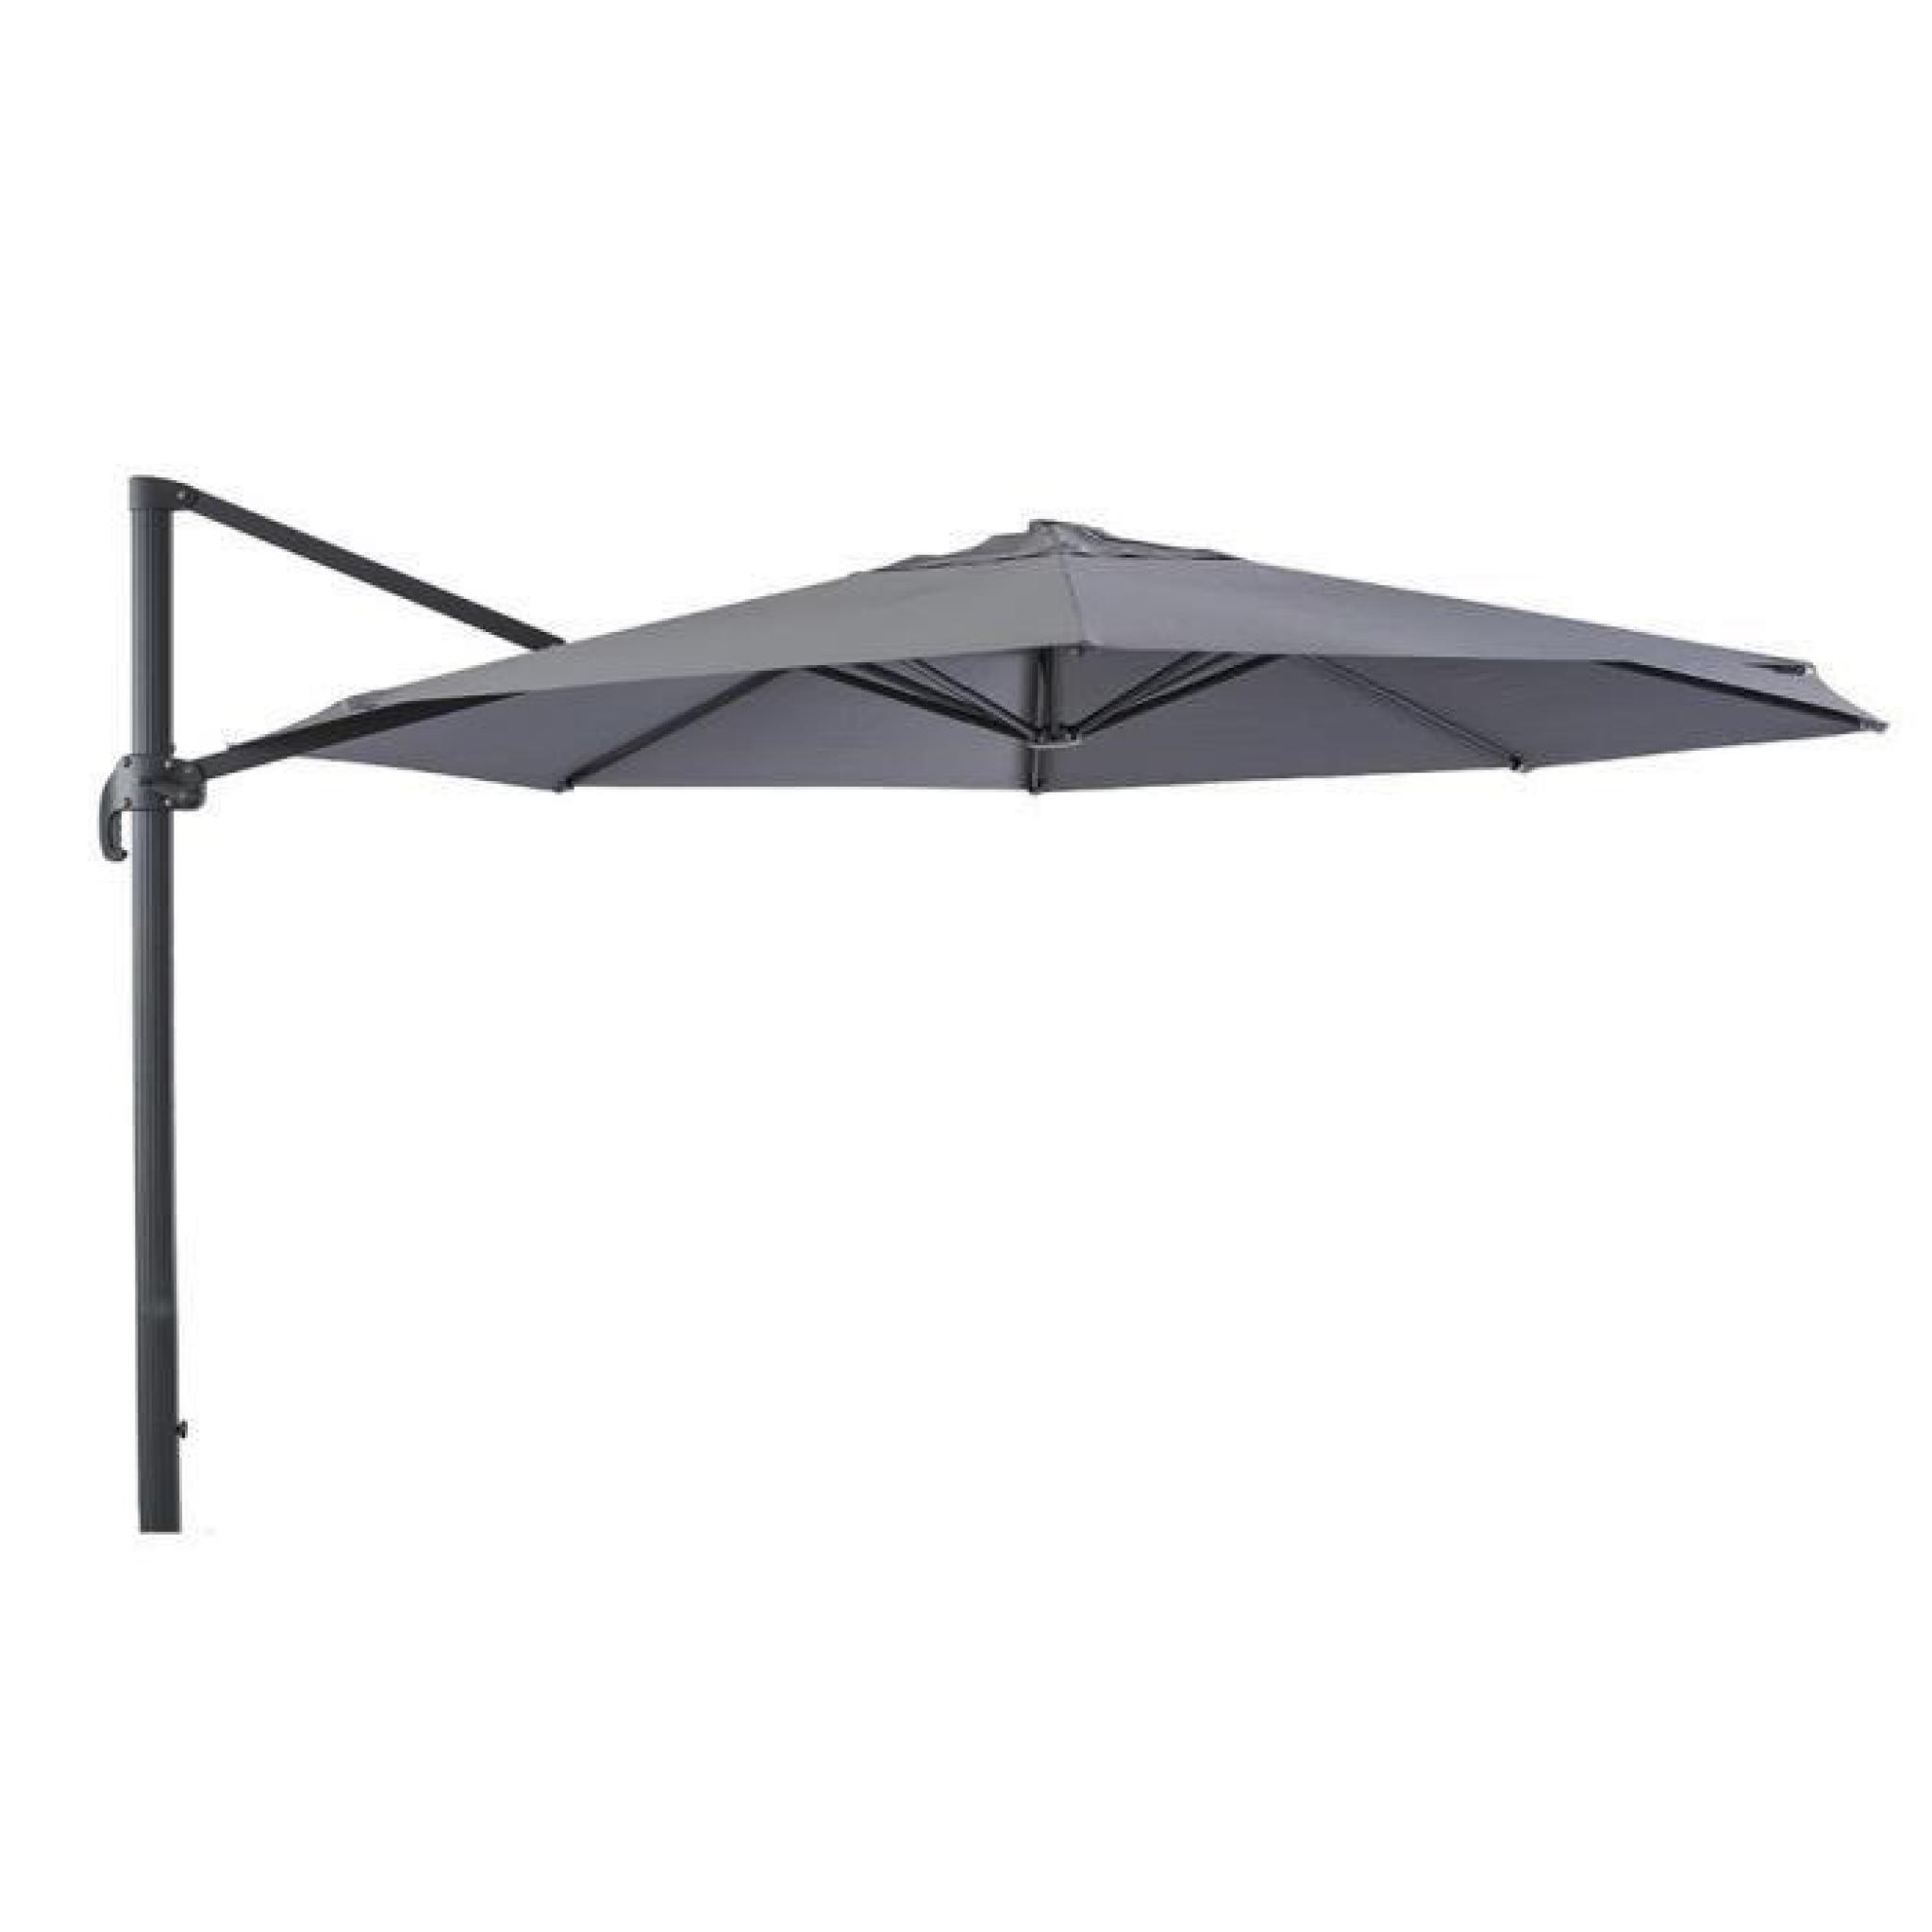 parasol d port ardoise en aluminium et polyester 4 x 2 90 m achat vente parasol deporte pas. Black Bedroom Furniture Sets. Home Design Ideas